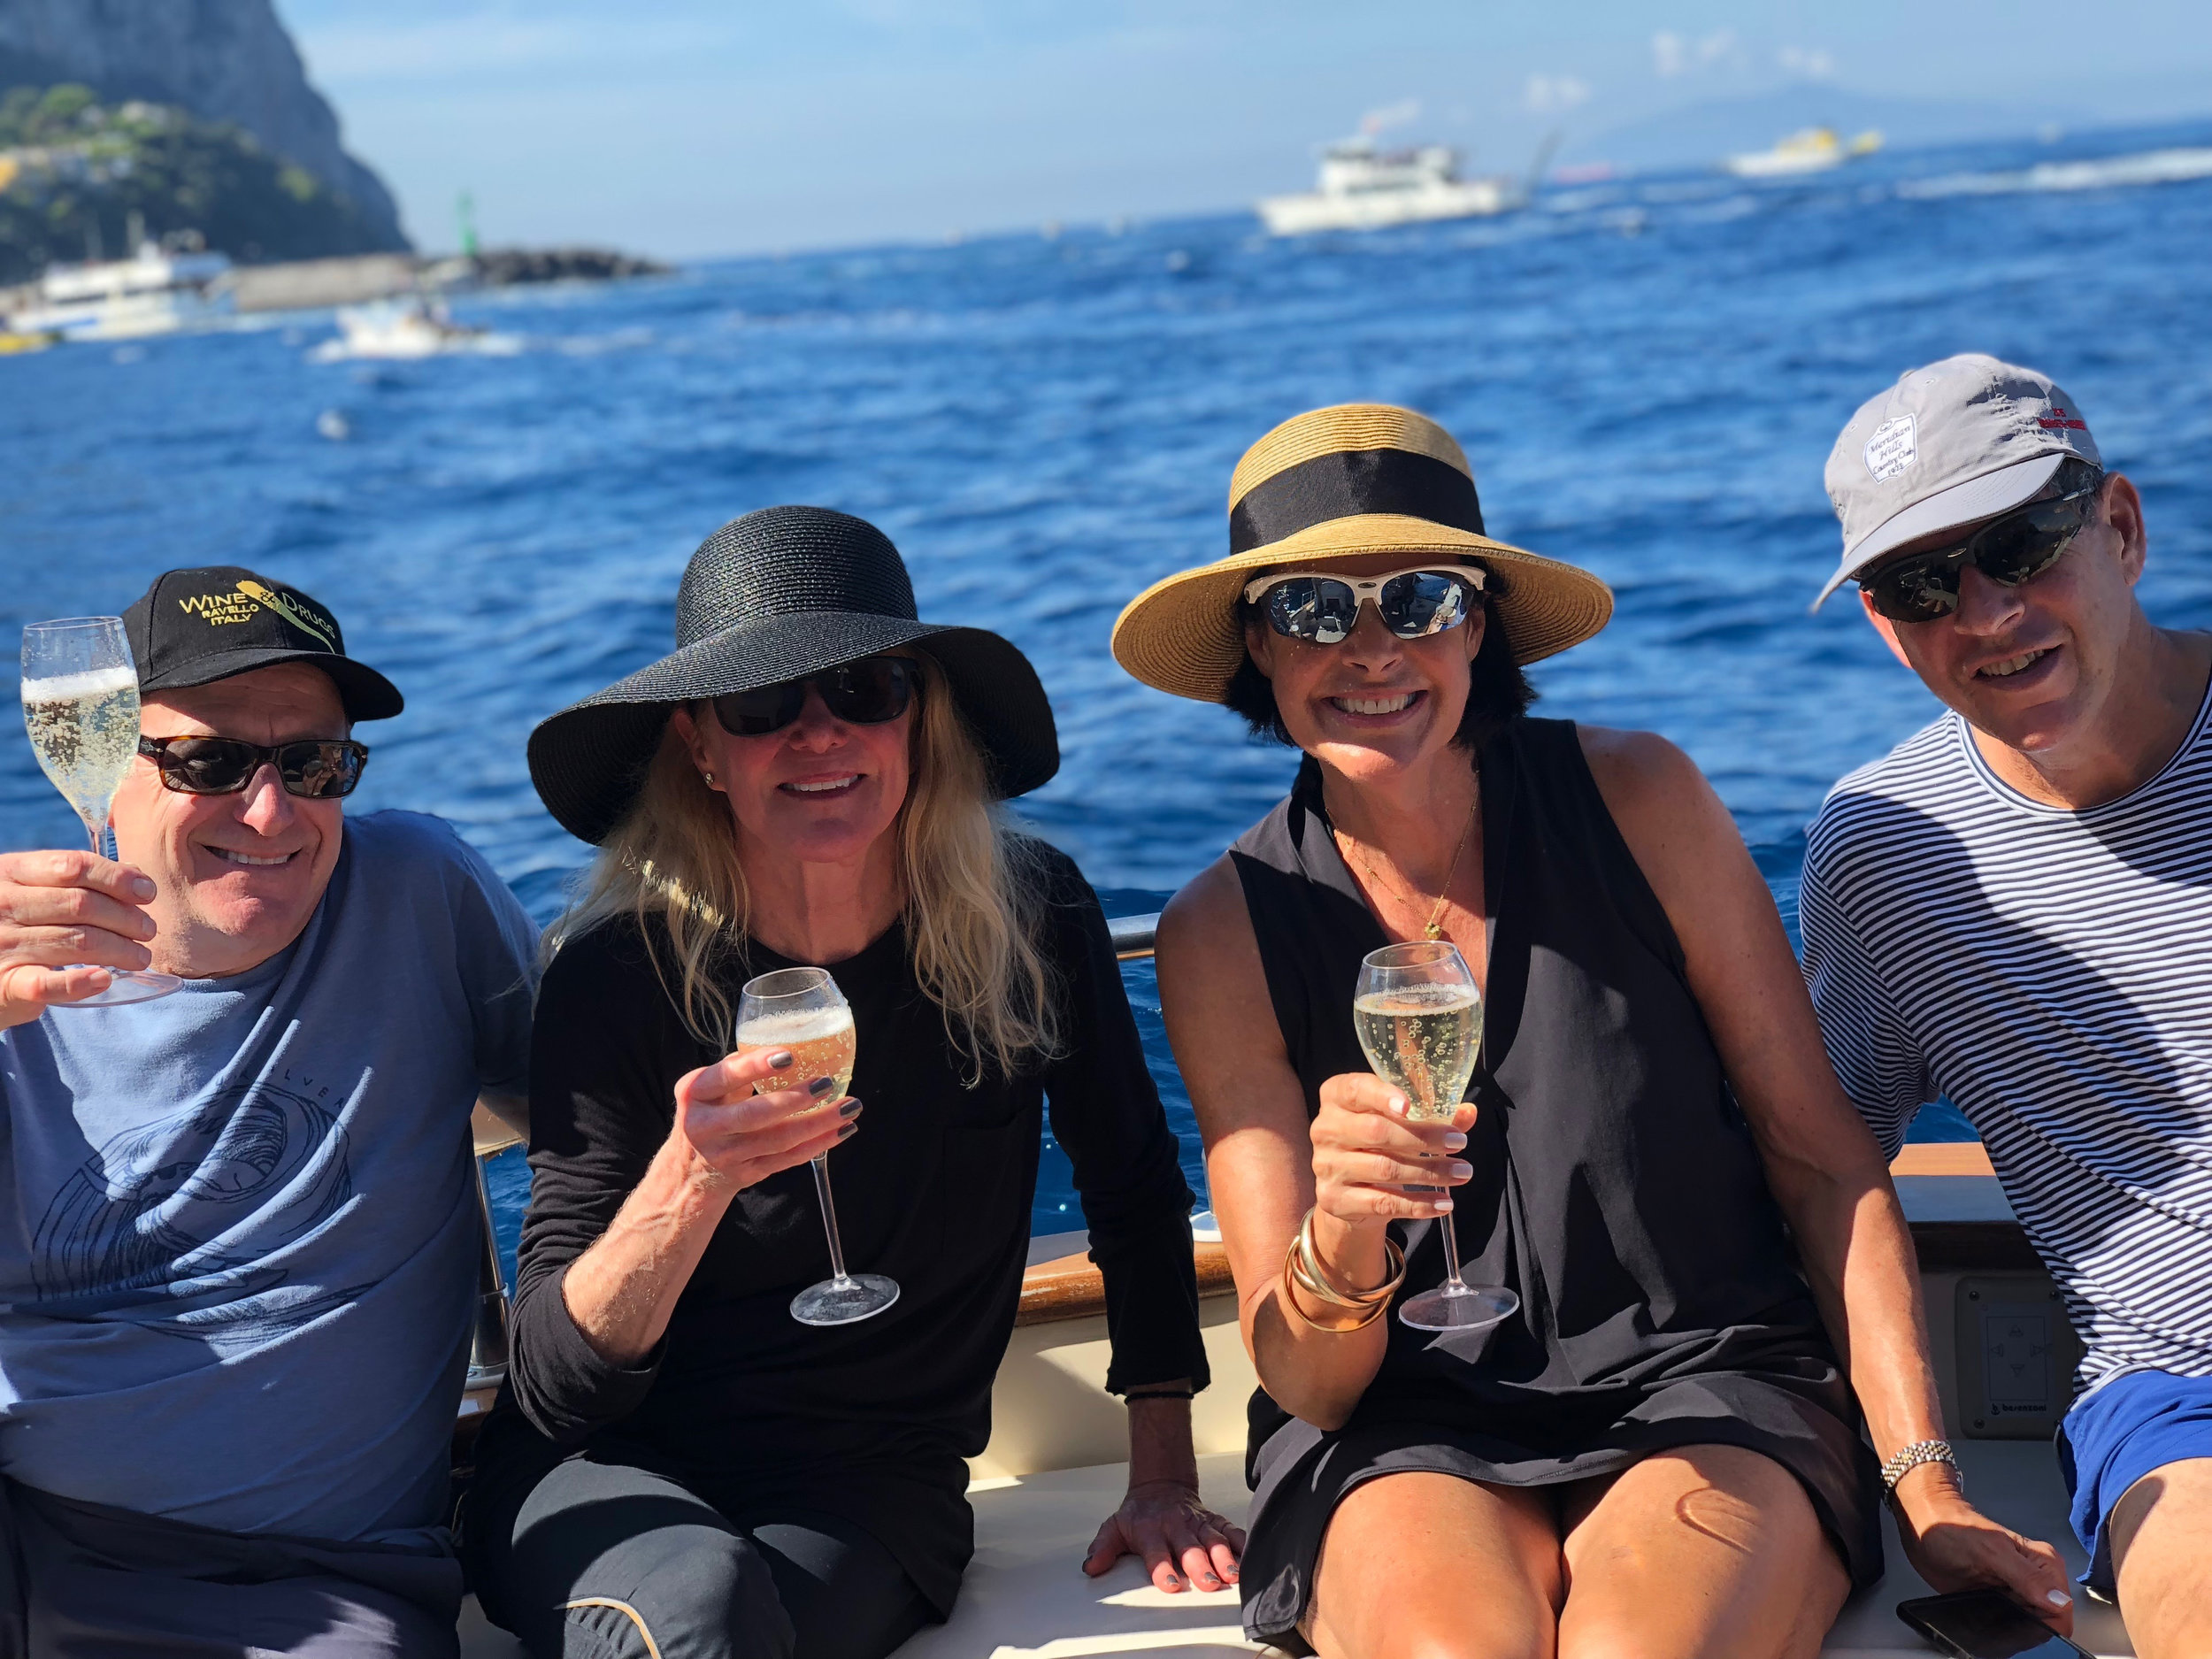 john, marcia, mary & alan taking in the views of stunning amalfi coast